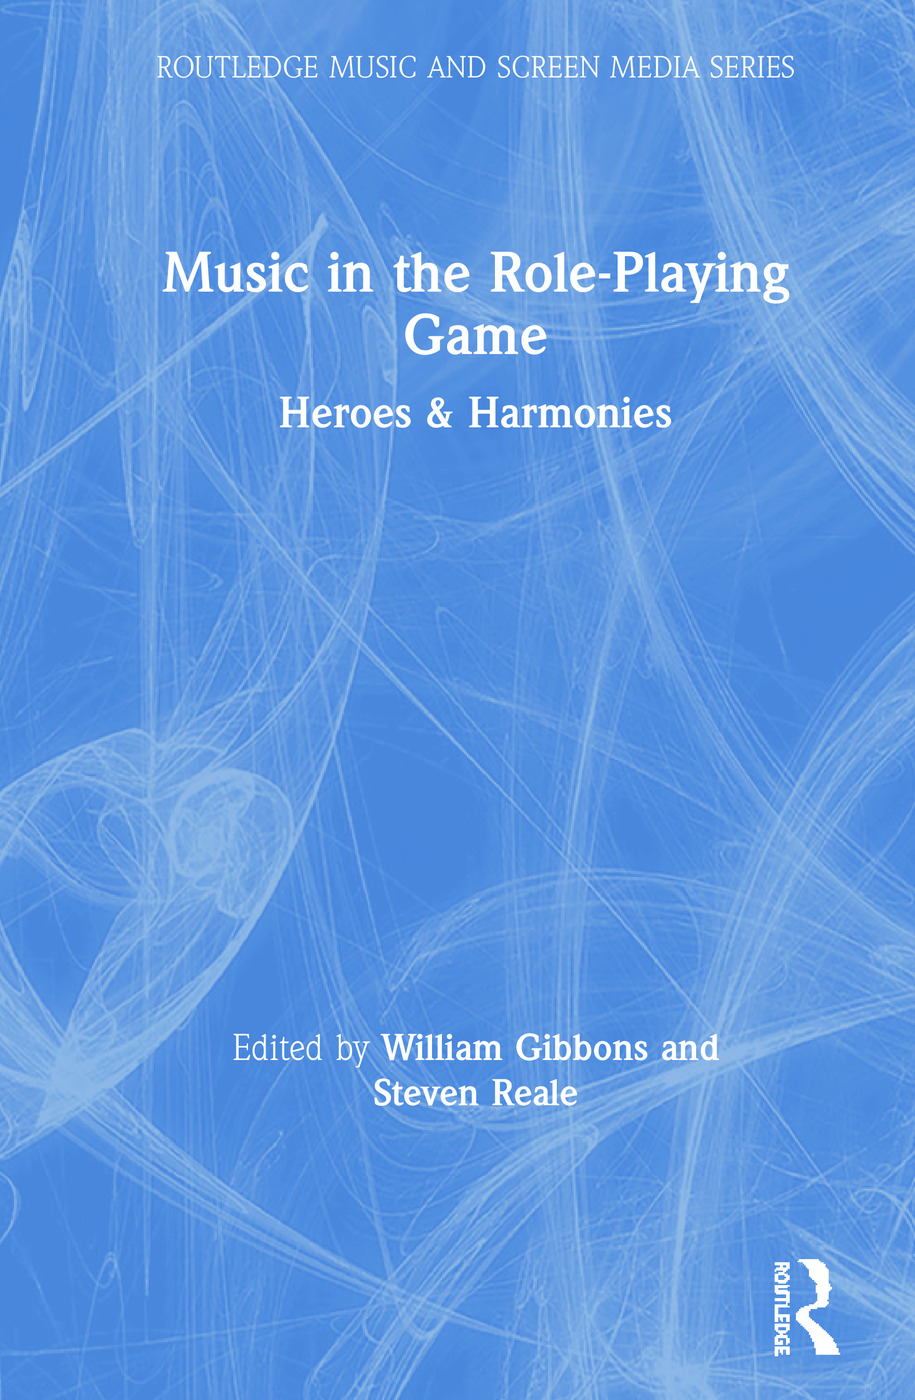 Music in the Role-Playing Game: Heroes & Harmonies book cover